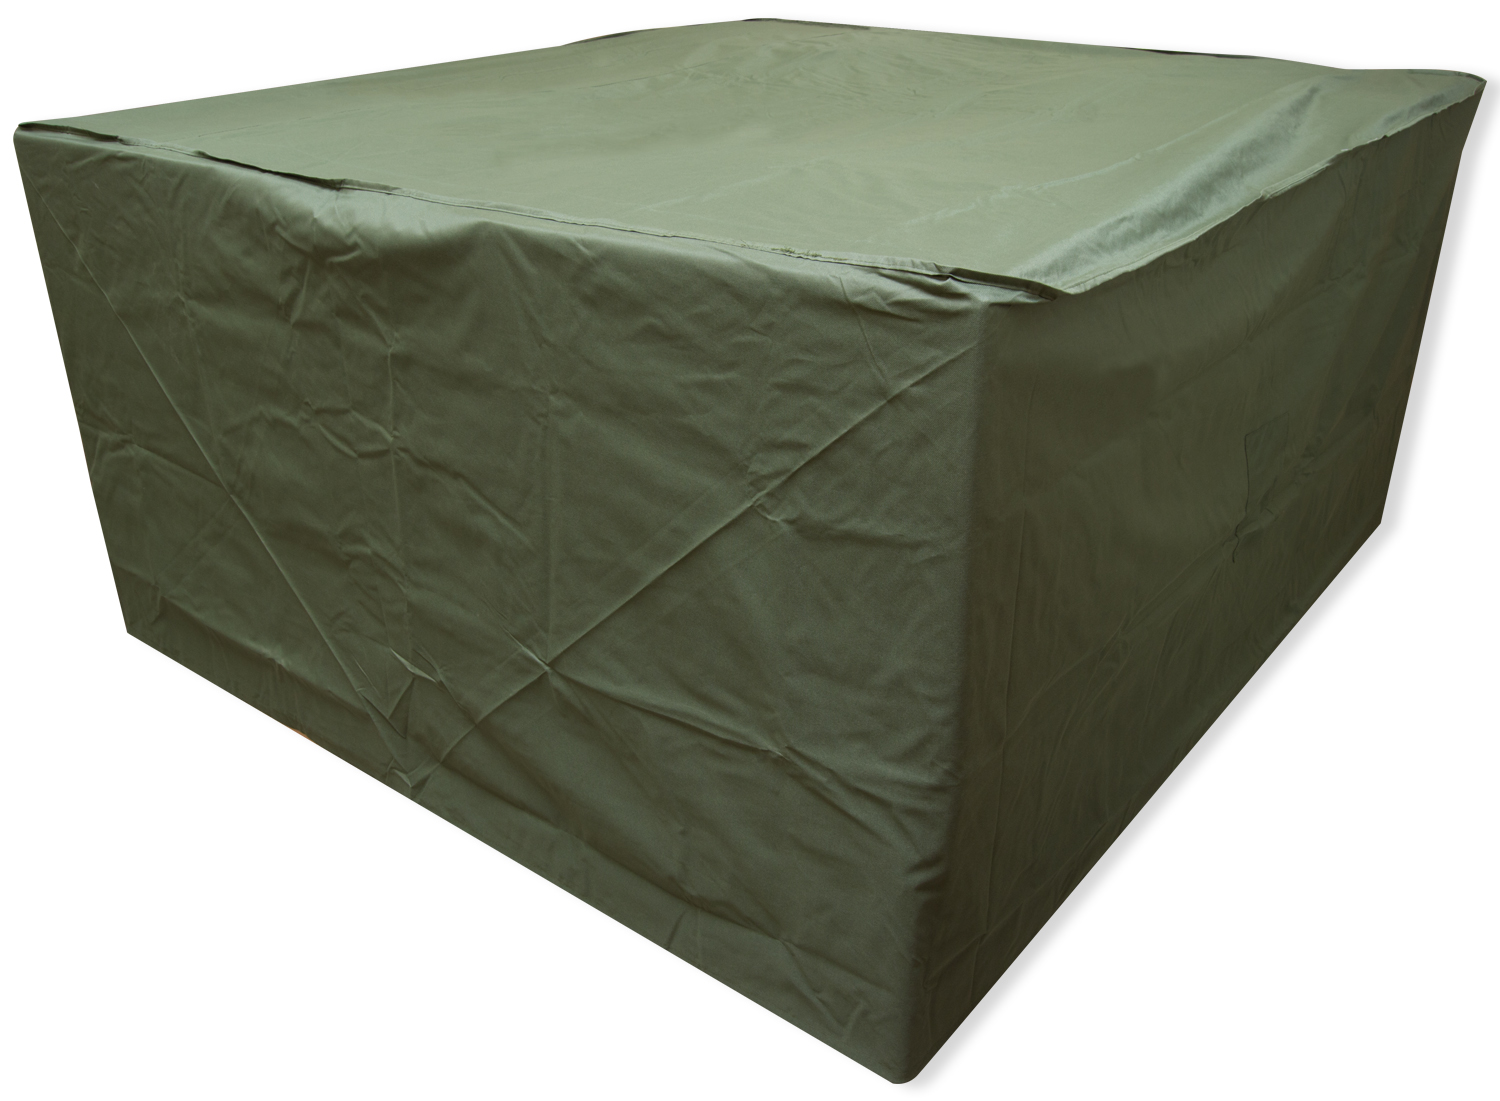 Oxbridge Green Oval Waterproof Outdoor Garden Patio Set Furniture Cover